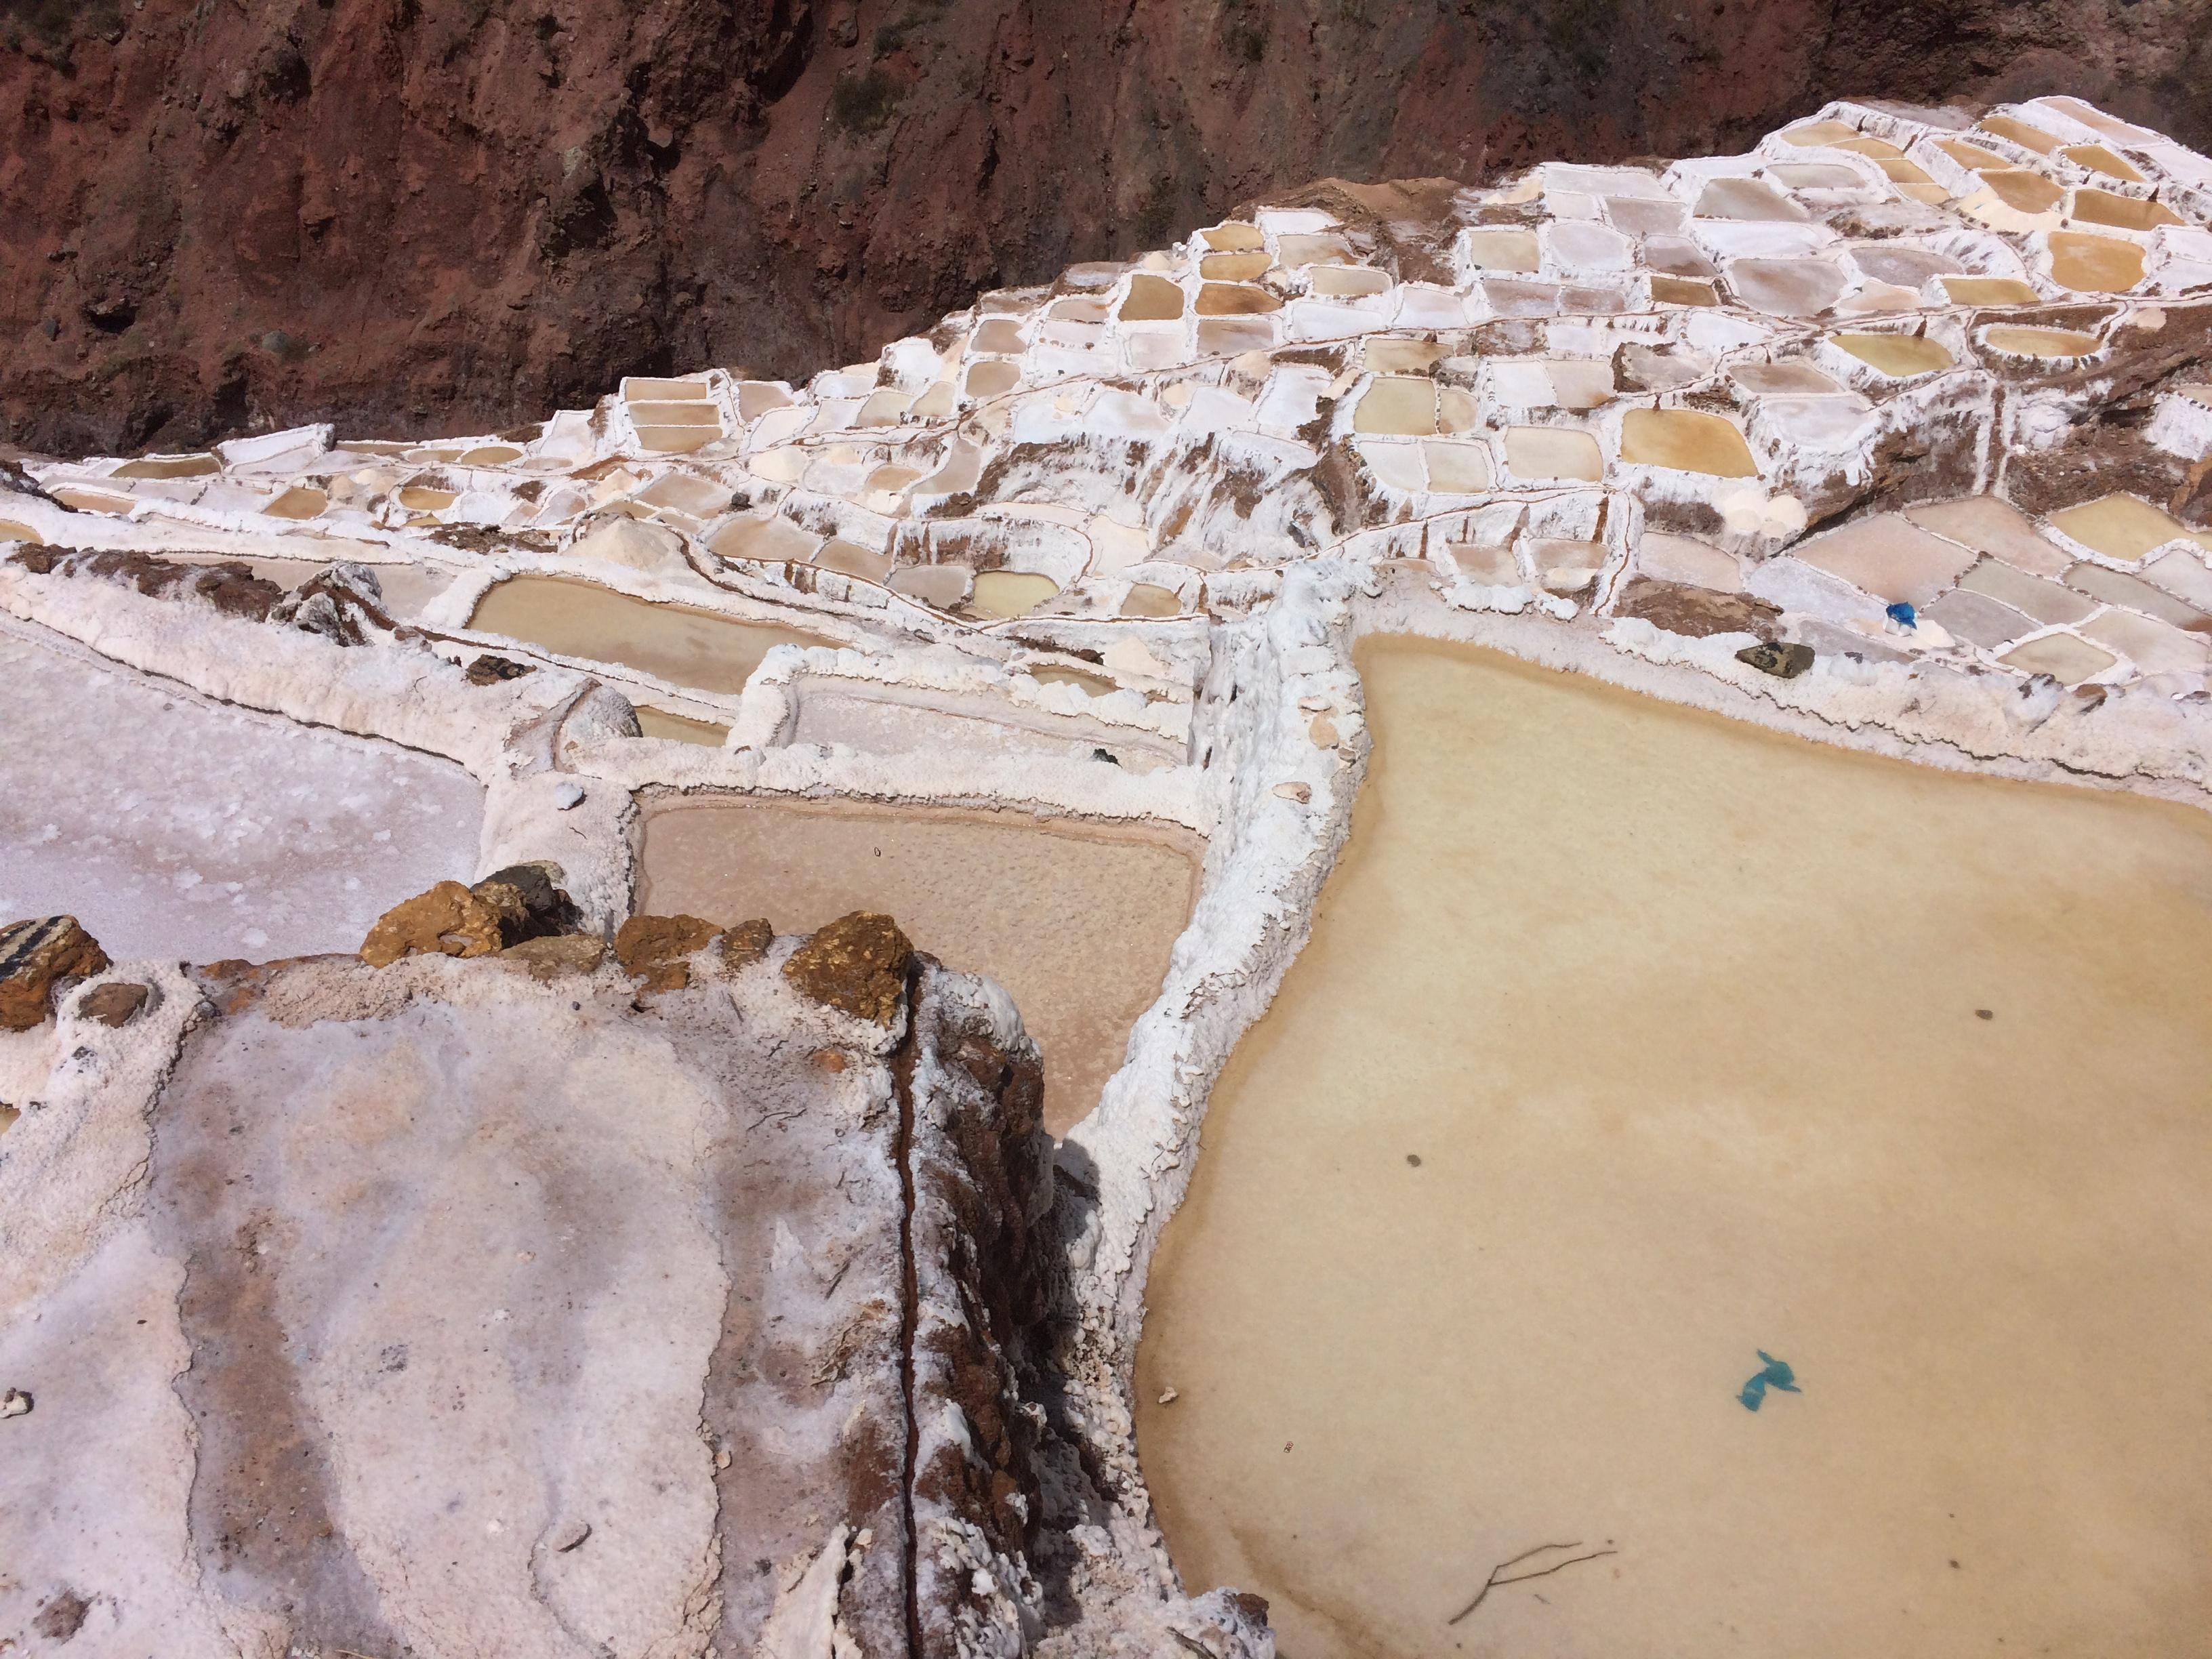 iPhone 260 - How to See Salt Mines in Peru: A Guide In Photos